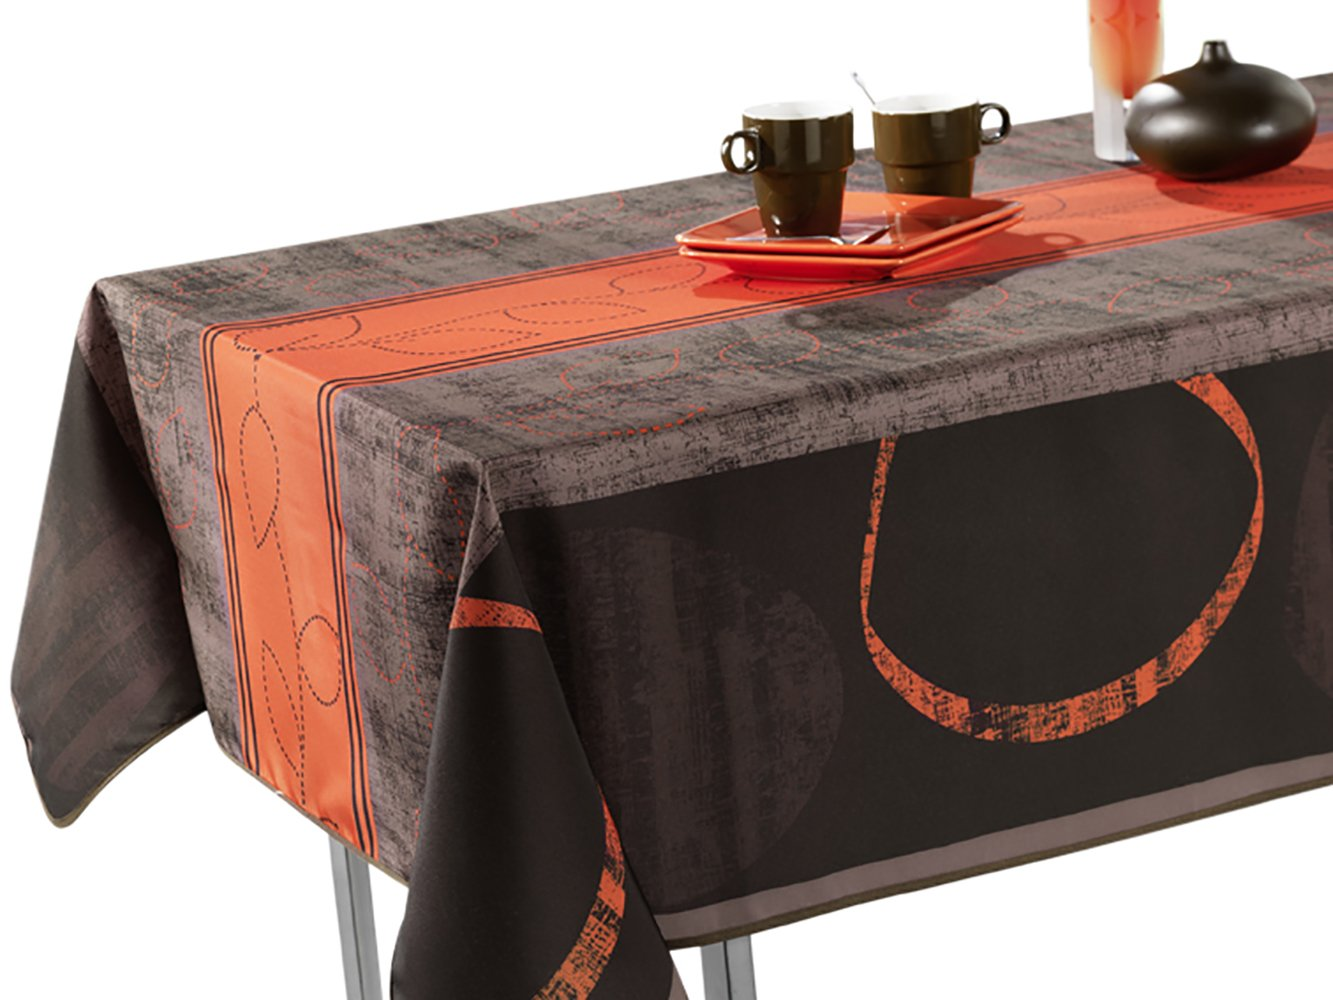 "60 x 95-Inch Rectangular Tablecloth Grey and Brown Modern Orange, Stain Resistant, Spill Proof, Liquid Spills bead up, Seats 8 to 10 People (Other Size Available: 63"" Round, 60 x 80"", 60 x 120"")."